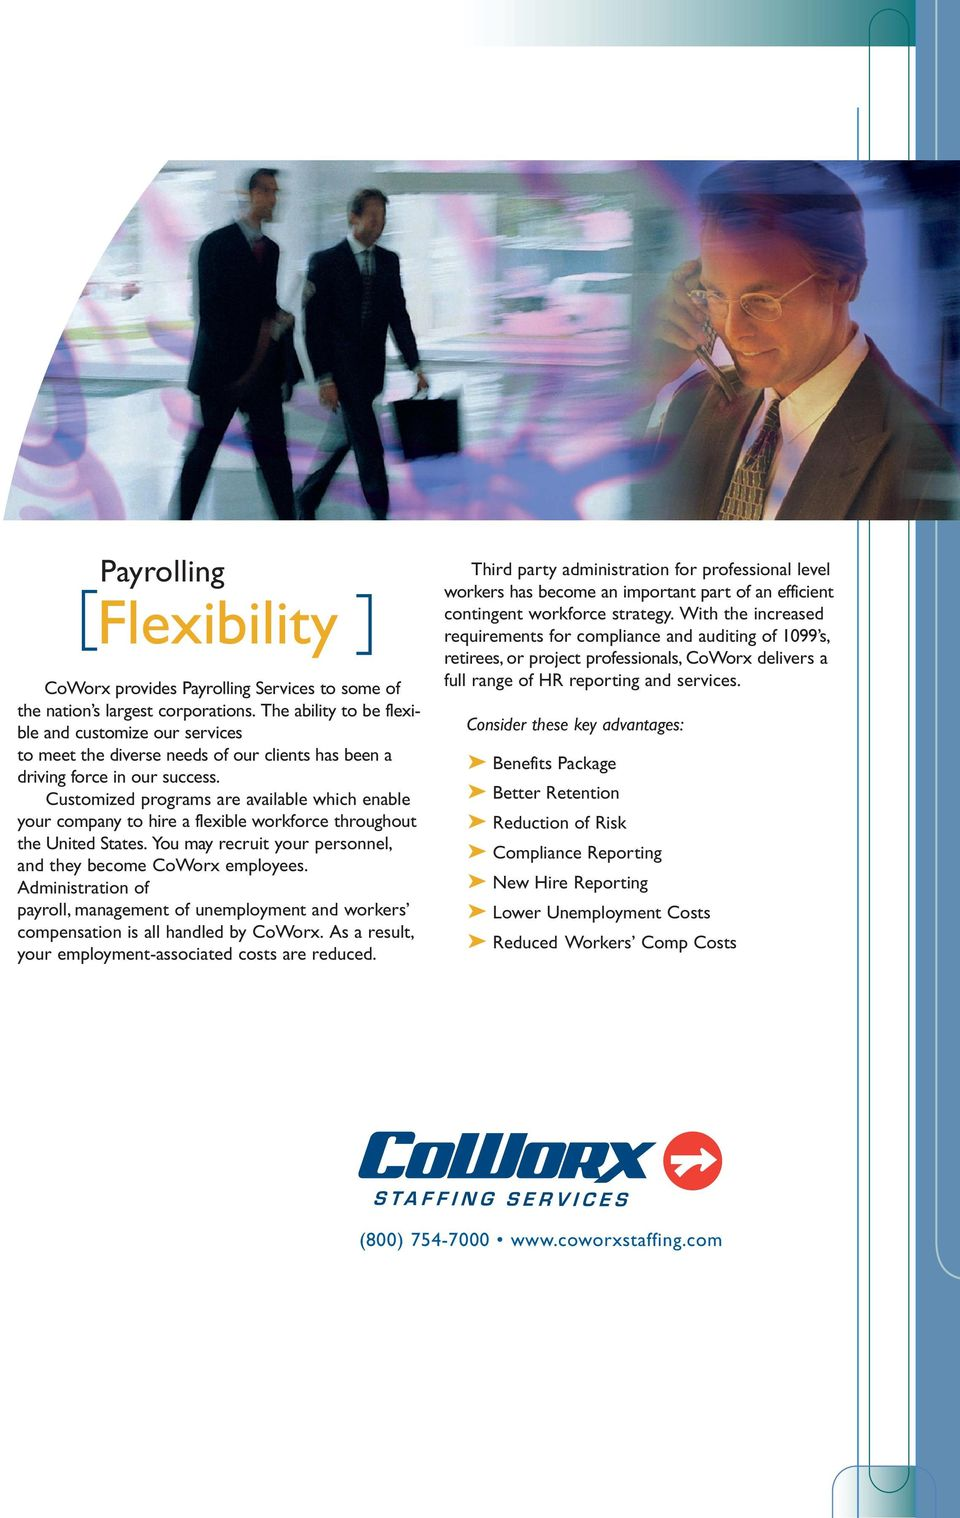 Customized programs are available which enable your company to hire a flexible workforce throughout the United States. You may recruit your personnel, and they become CoWorx employees.